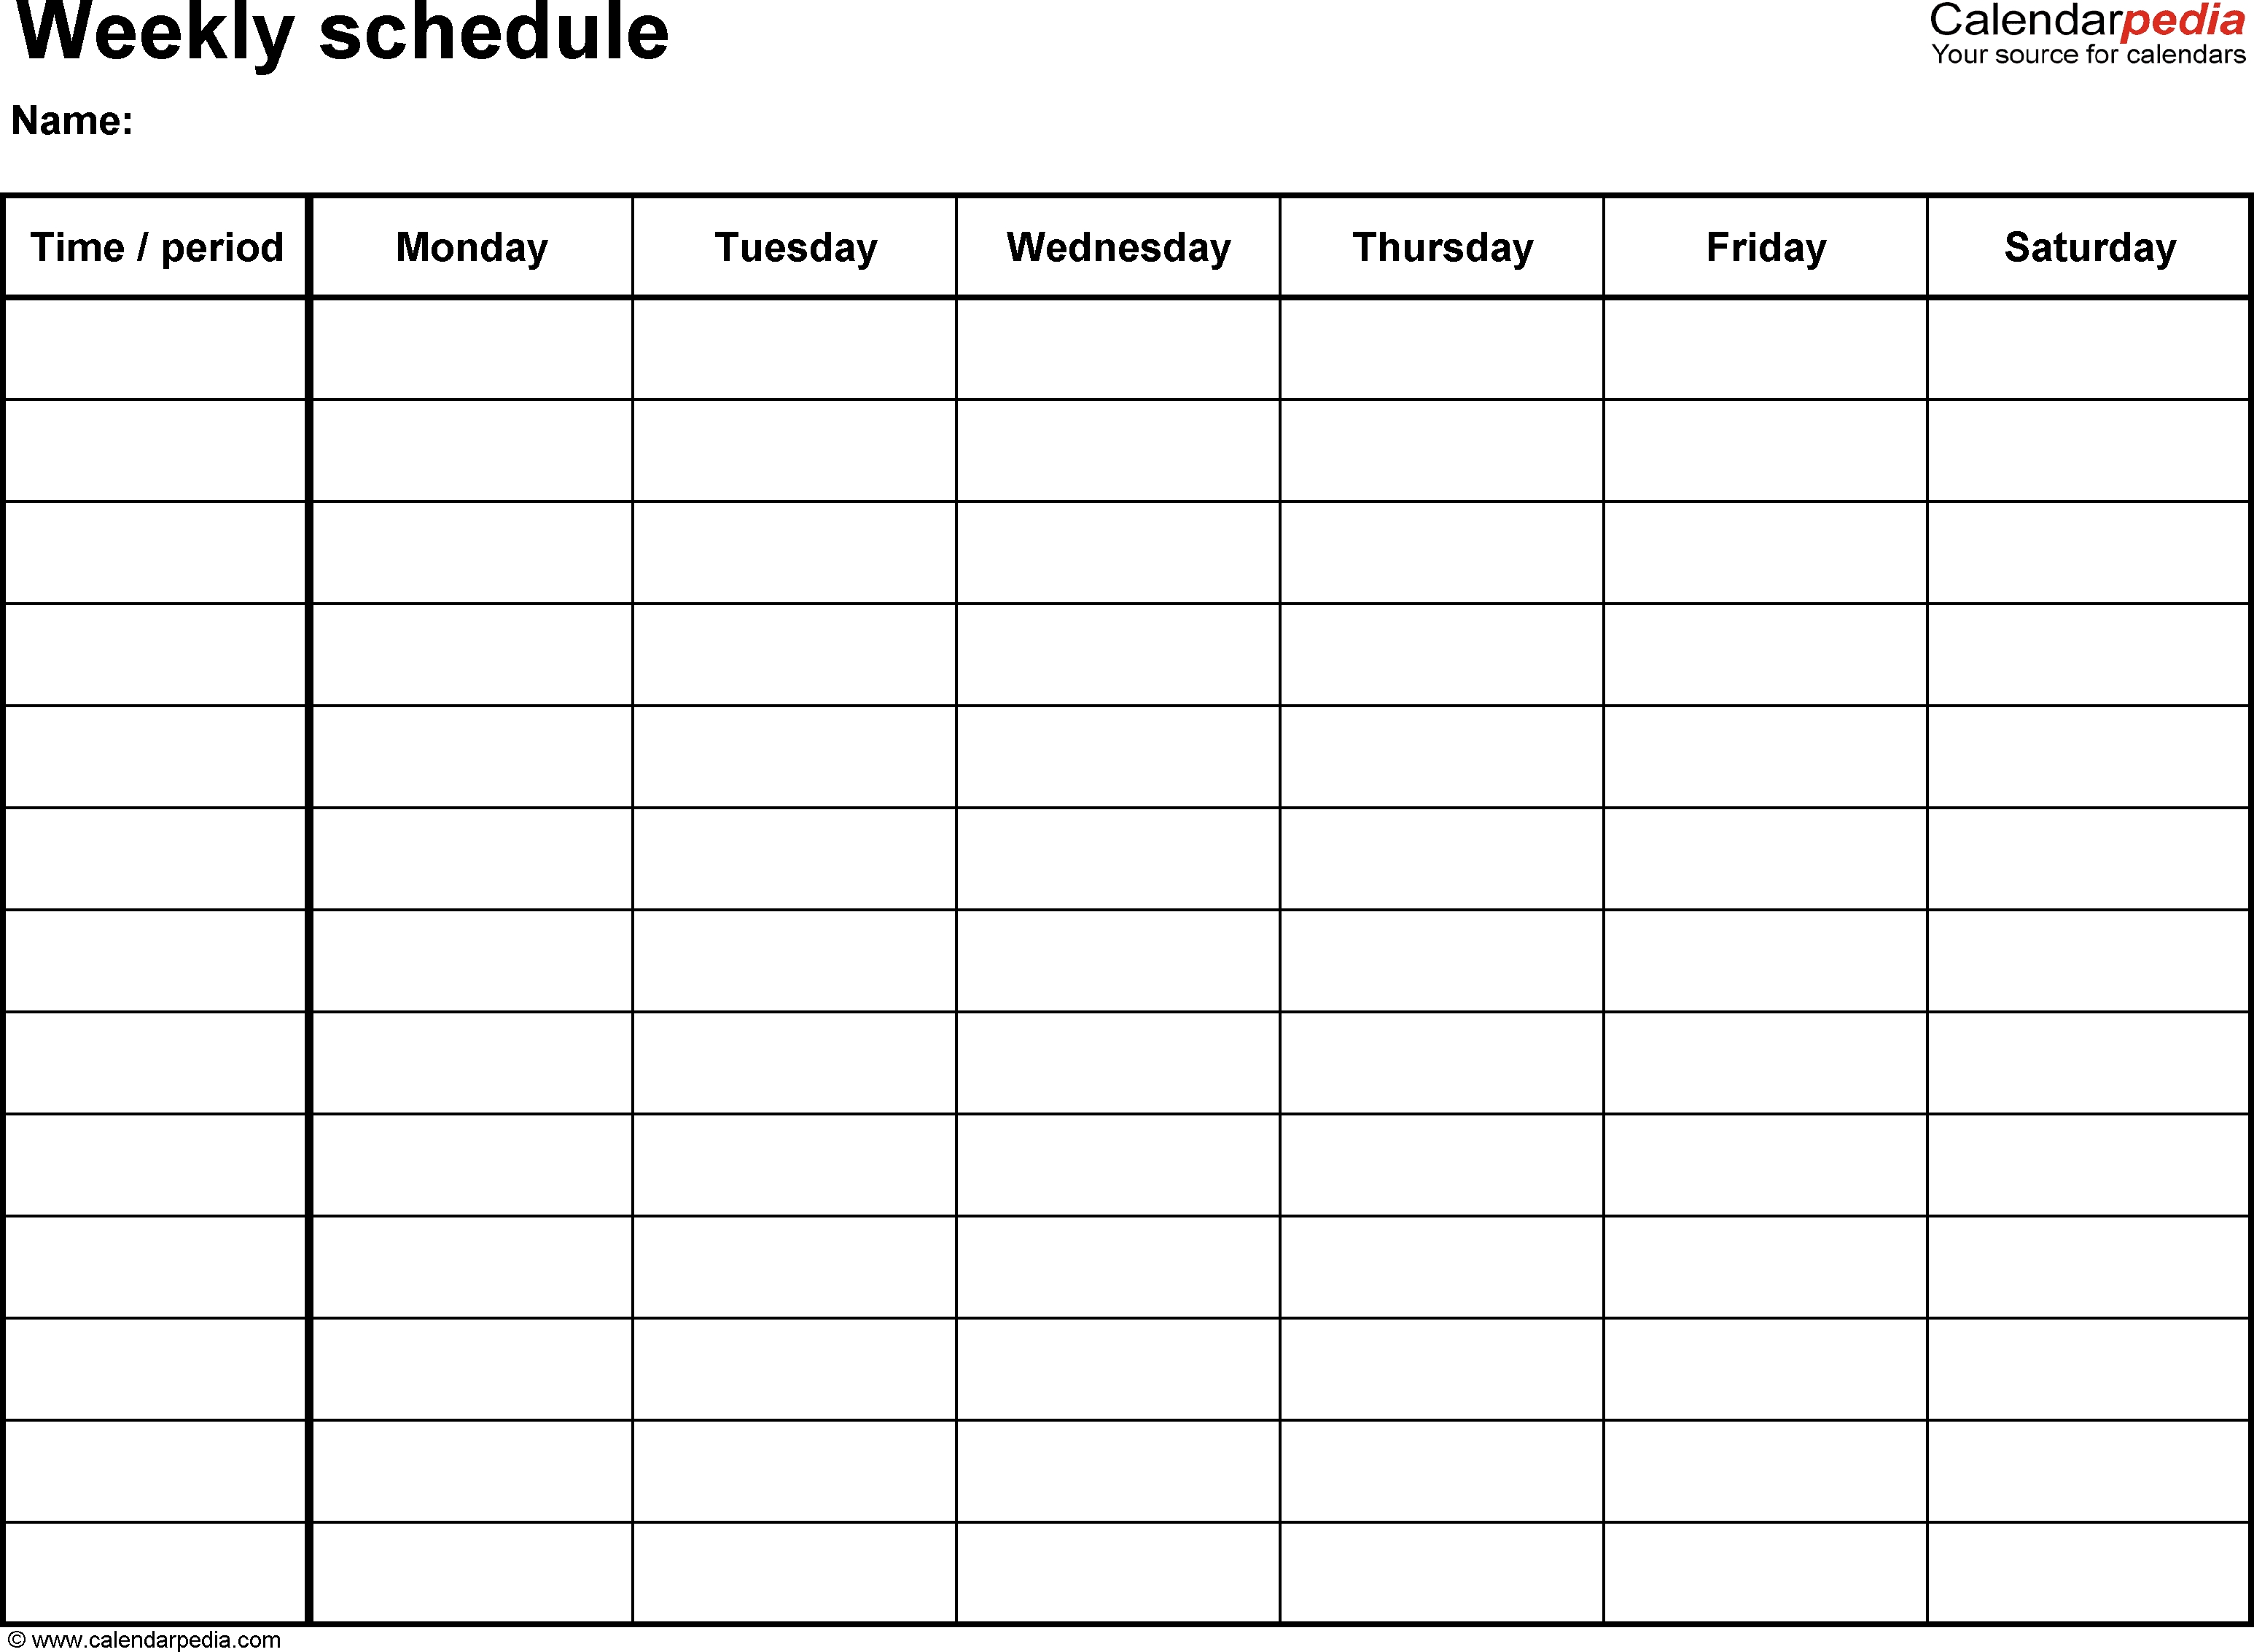 Free Weekly Schedule Templates For Word - 18 Templates intended for Weekly Calendar Template Monday Thru Friday